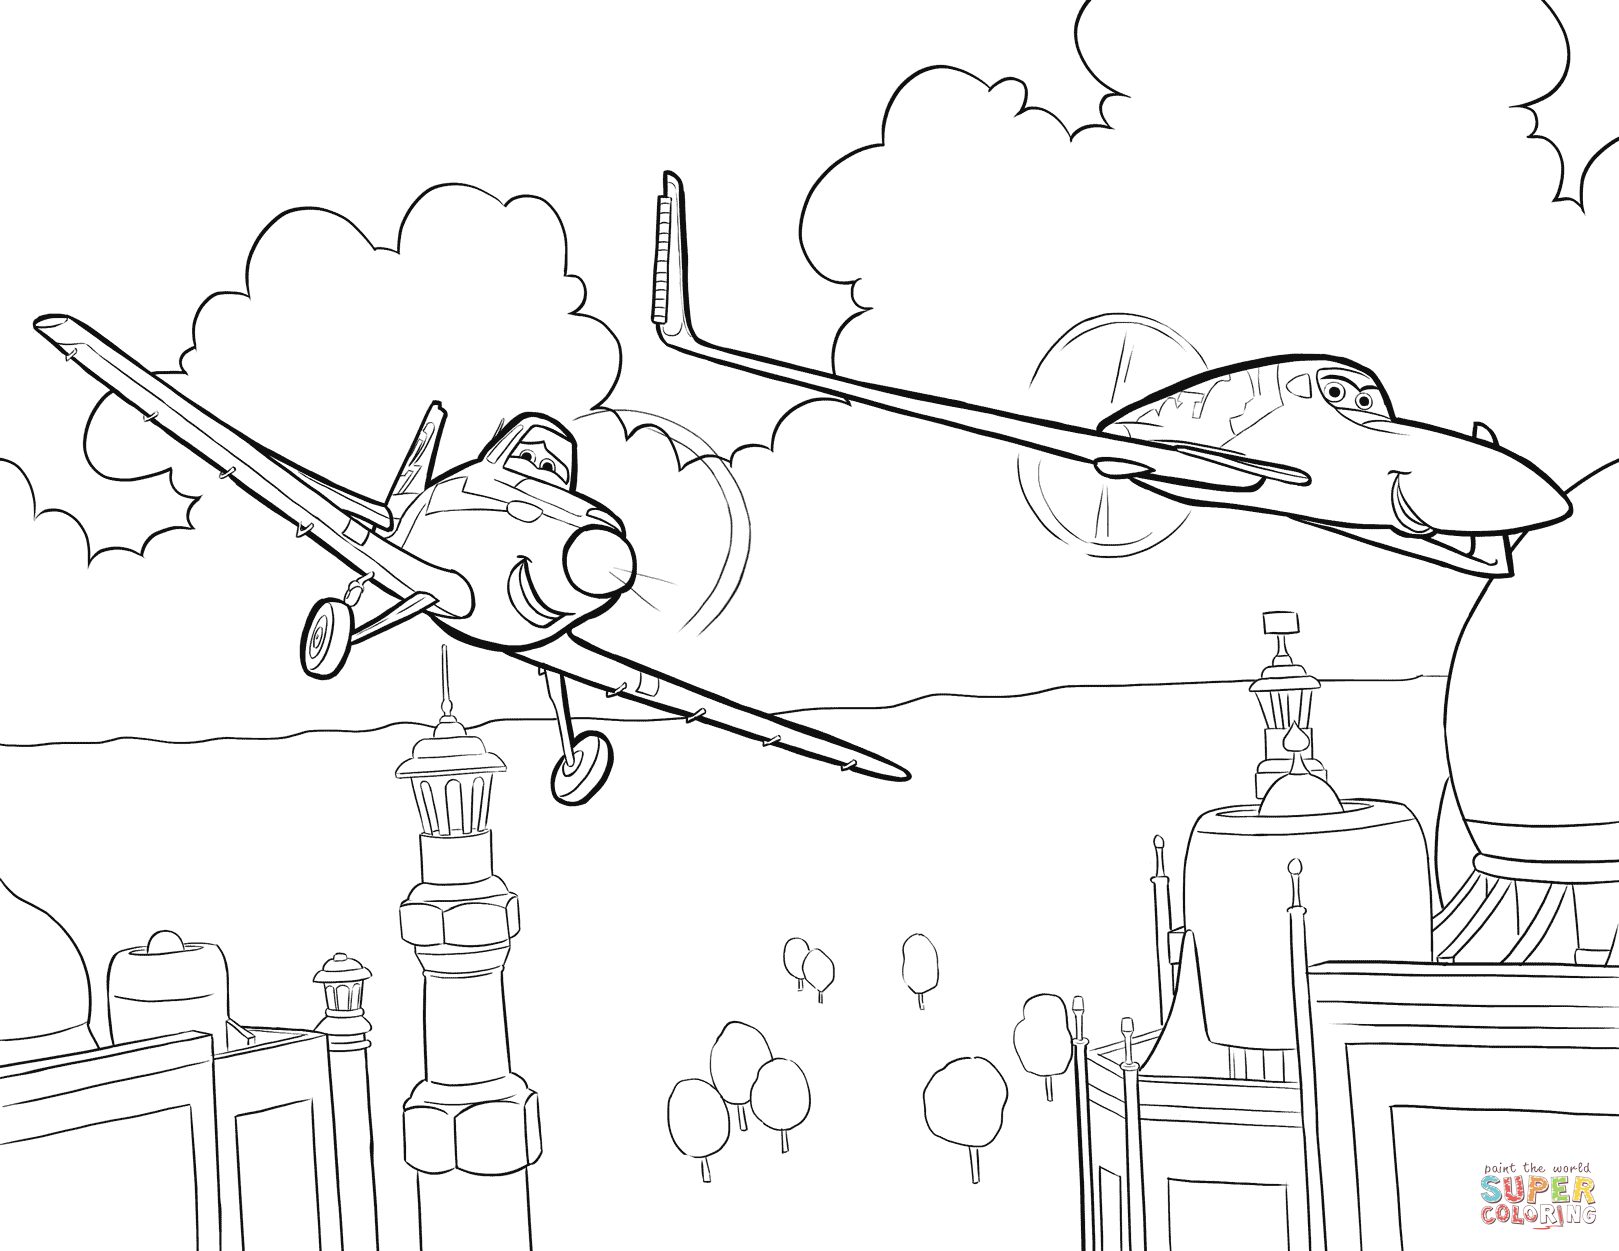 The Best Free Plane Coloring Page Images Download From 315 Free